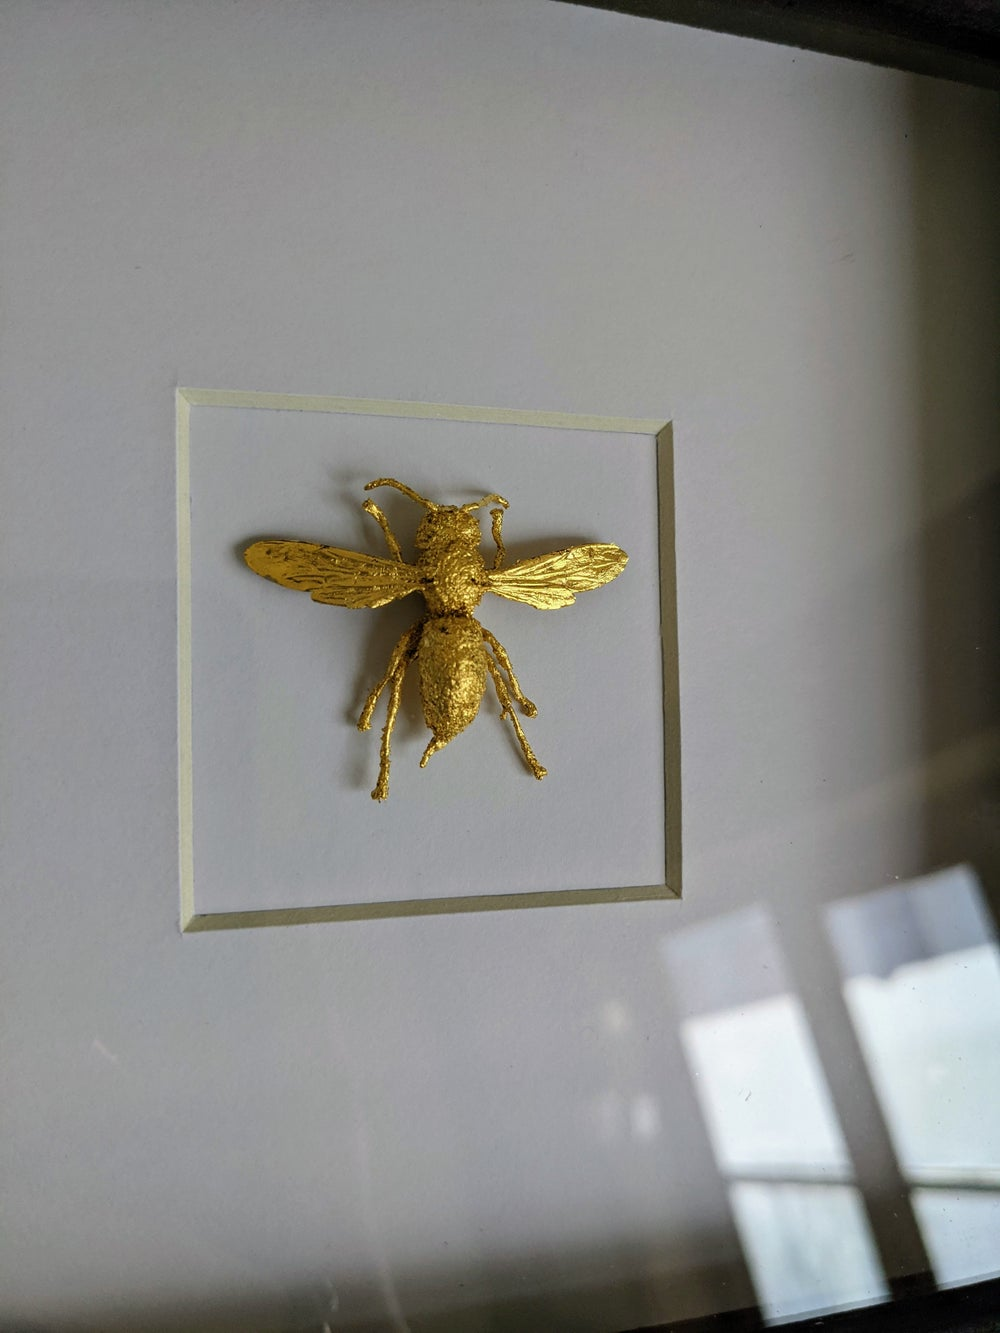 Gilded wasp